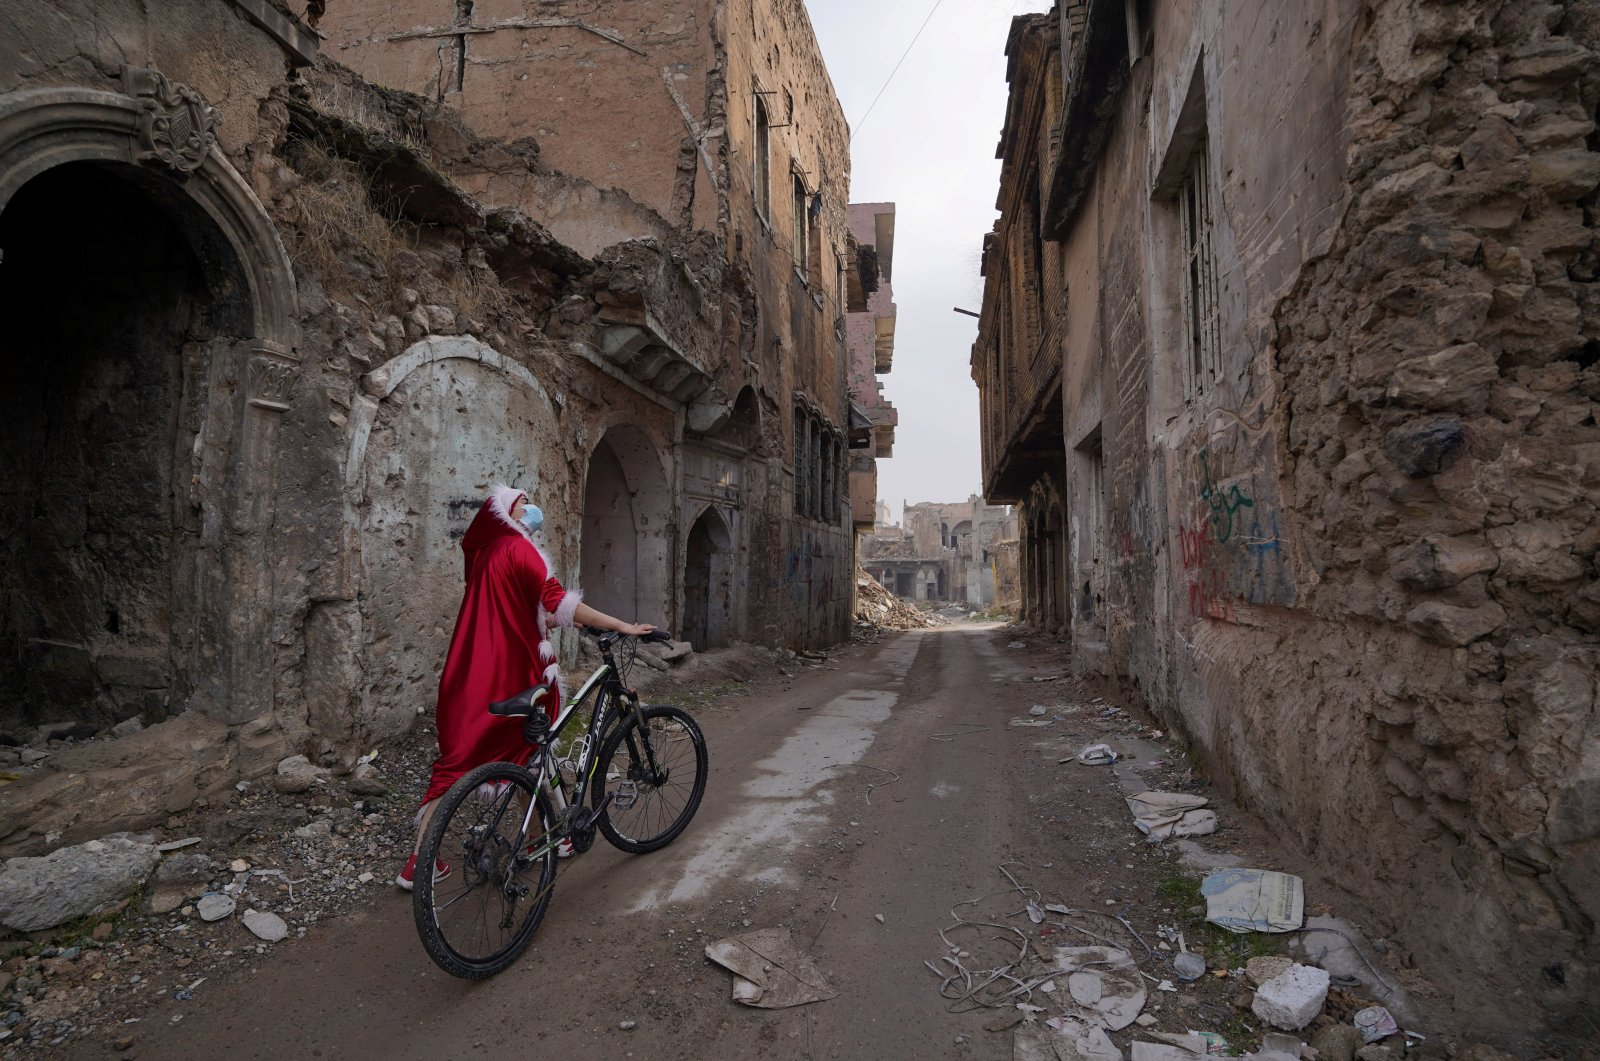 An Iraqi woman, dressed as Santa Claus, looks at the destroyed buildings as she walks with her bicycle in the old city of Mosul, Iraq, Dec. 18, 2020. (Reuters Photo)